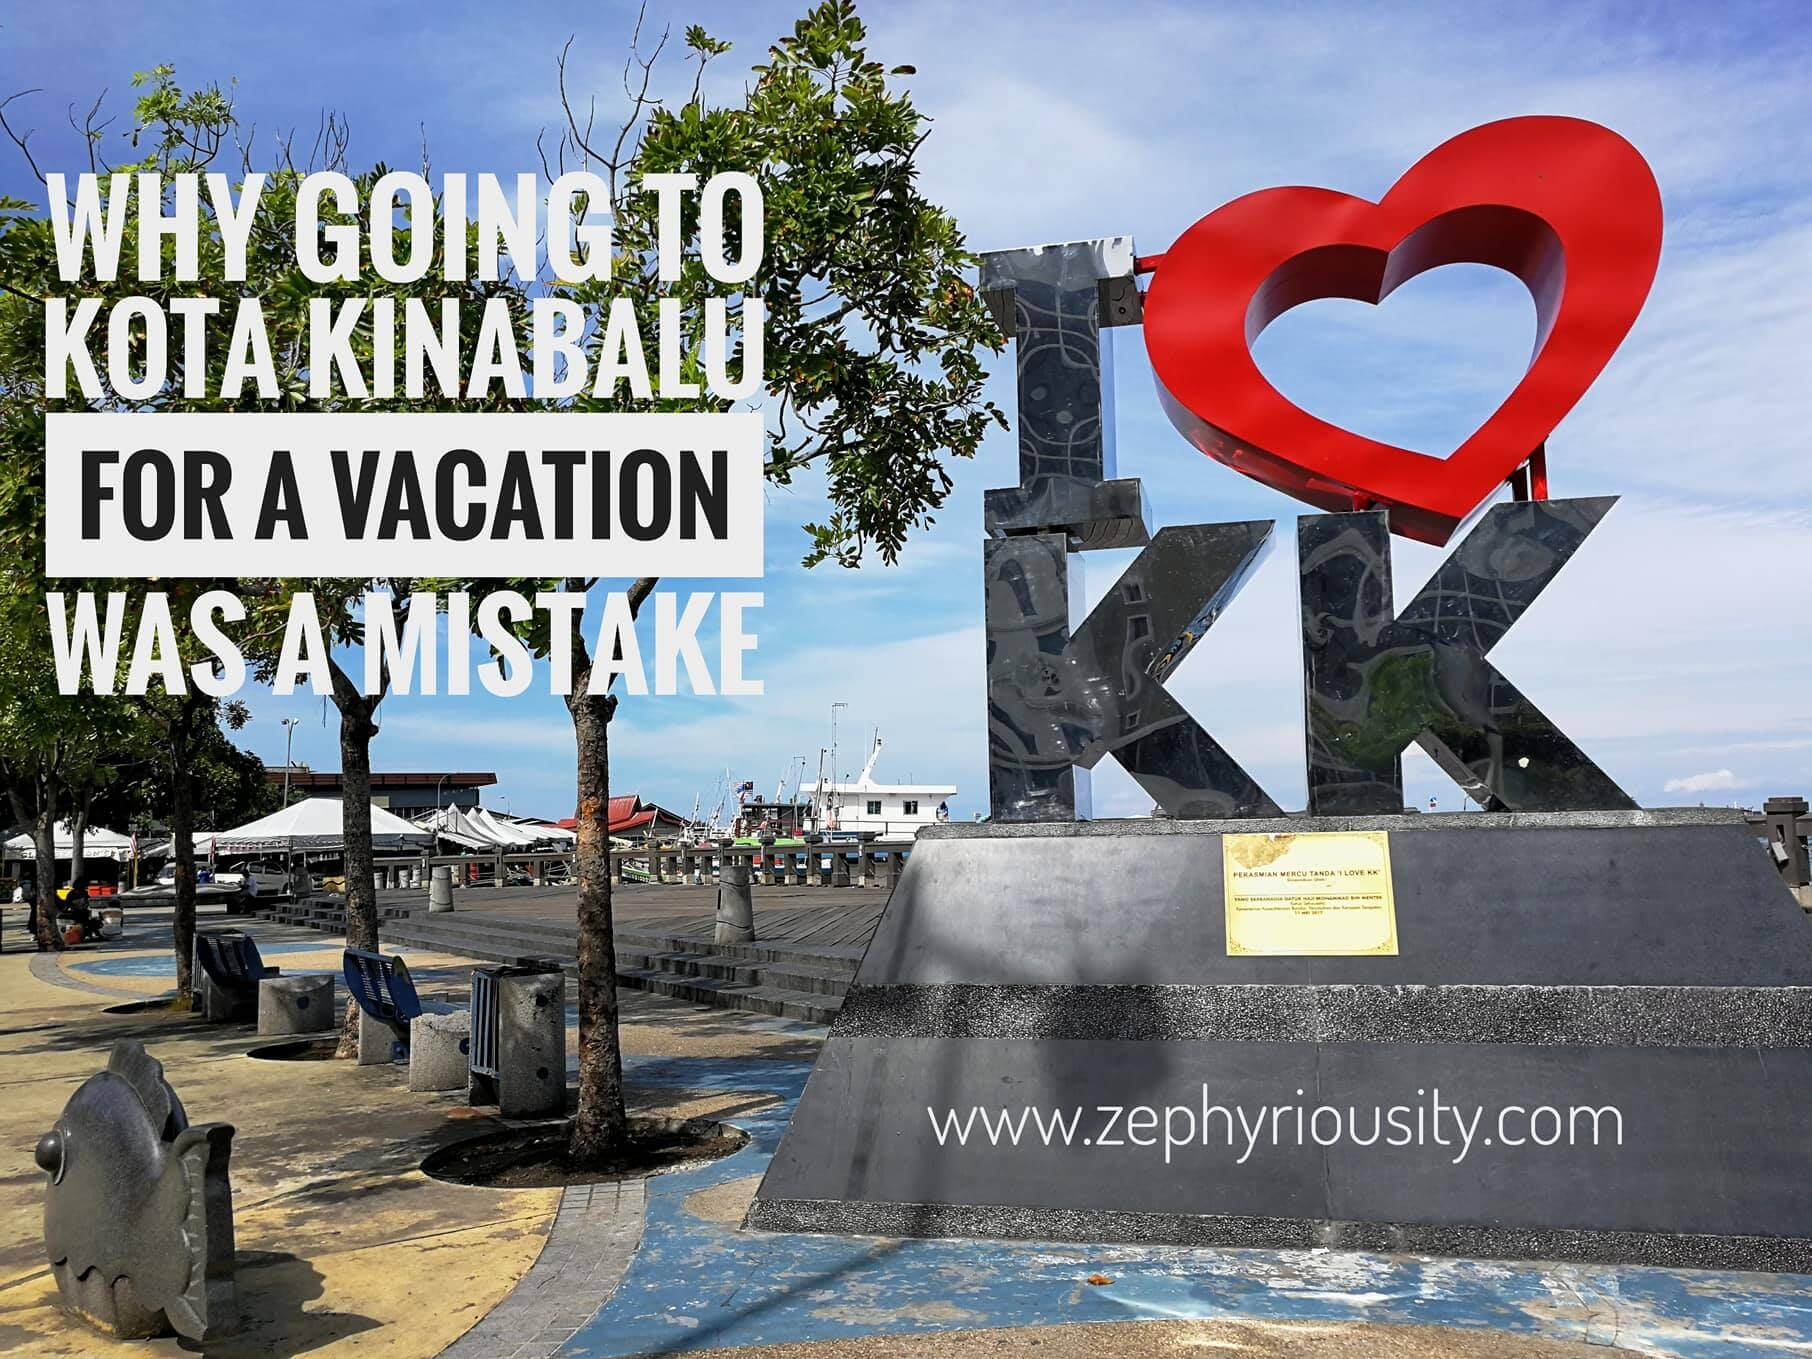 why going to kota kinabalu for a vacation was a mistake